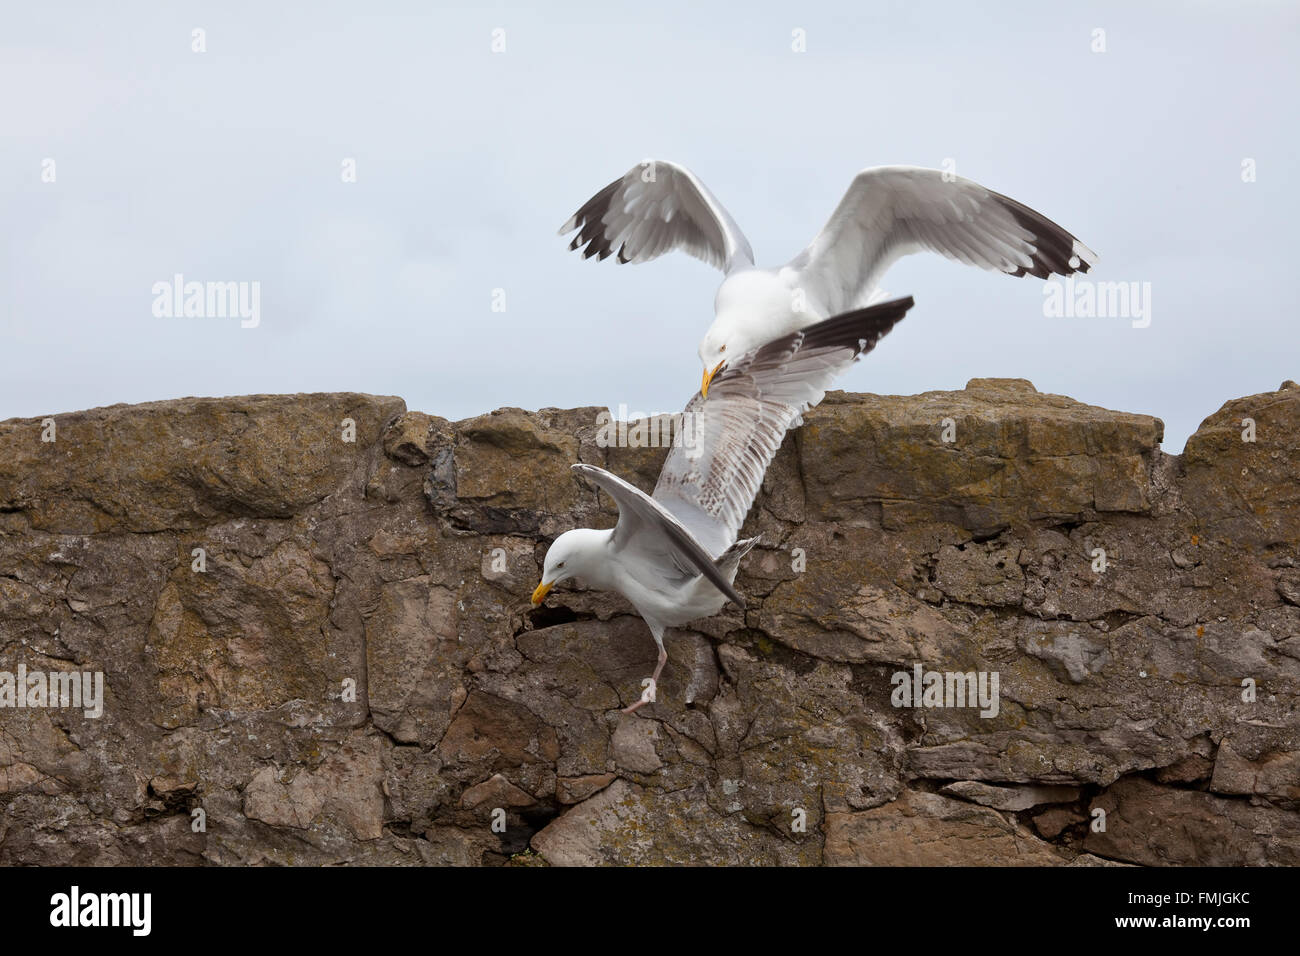 A pair of Herring Gulls Larus Argentatus involved in a territorial dispute on a stone sea wall - Stock Image